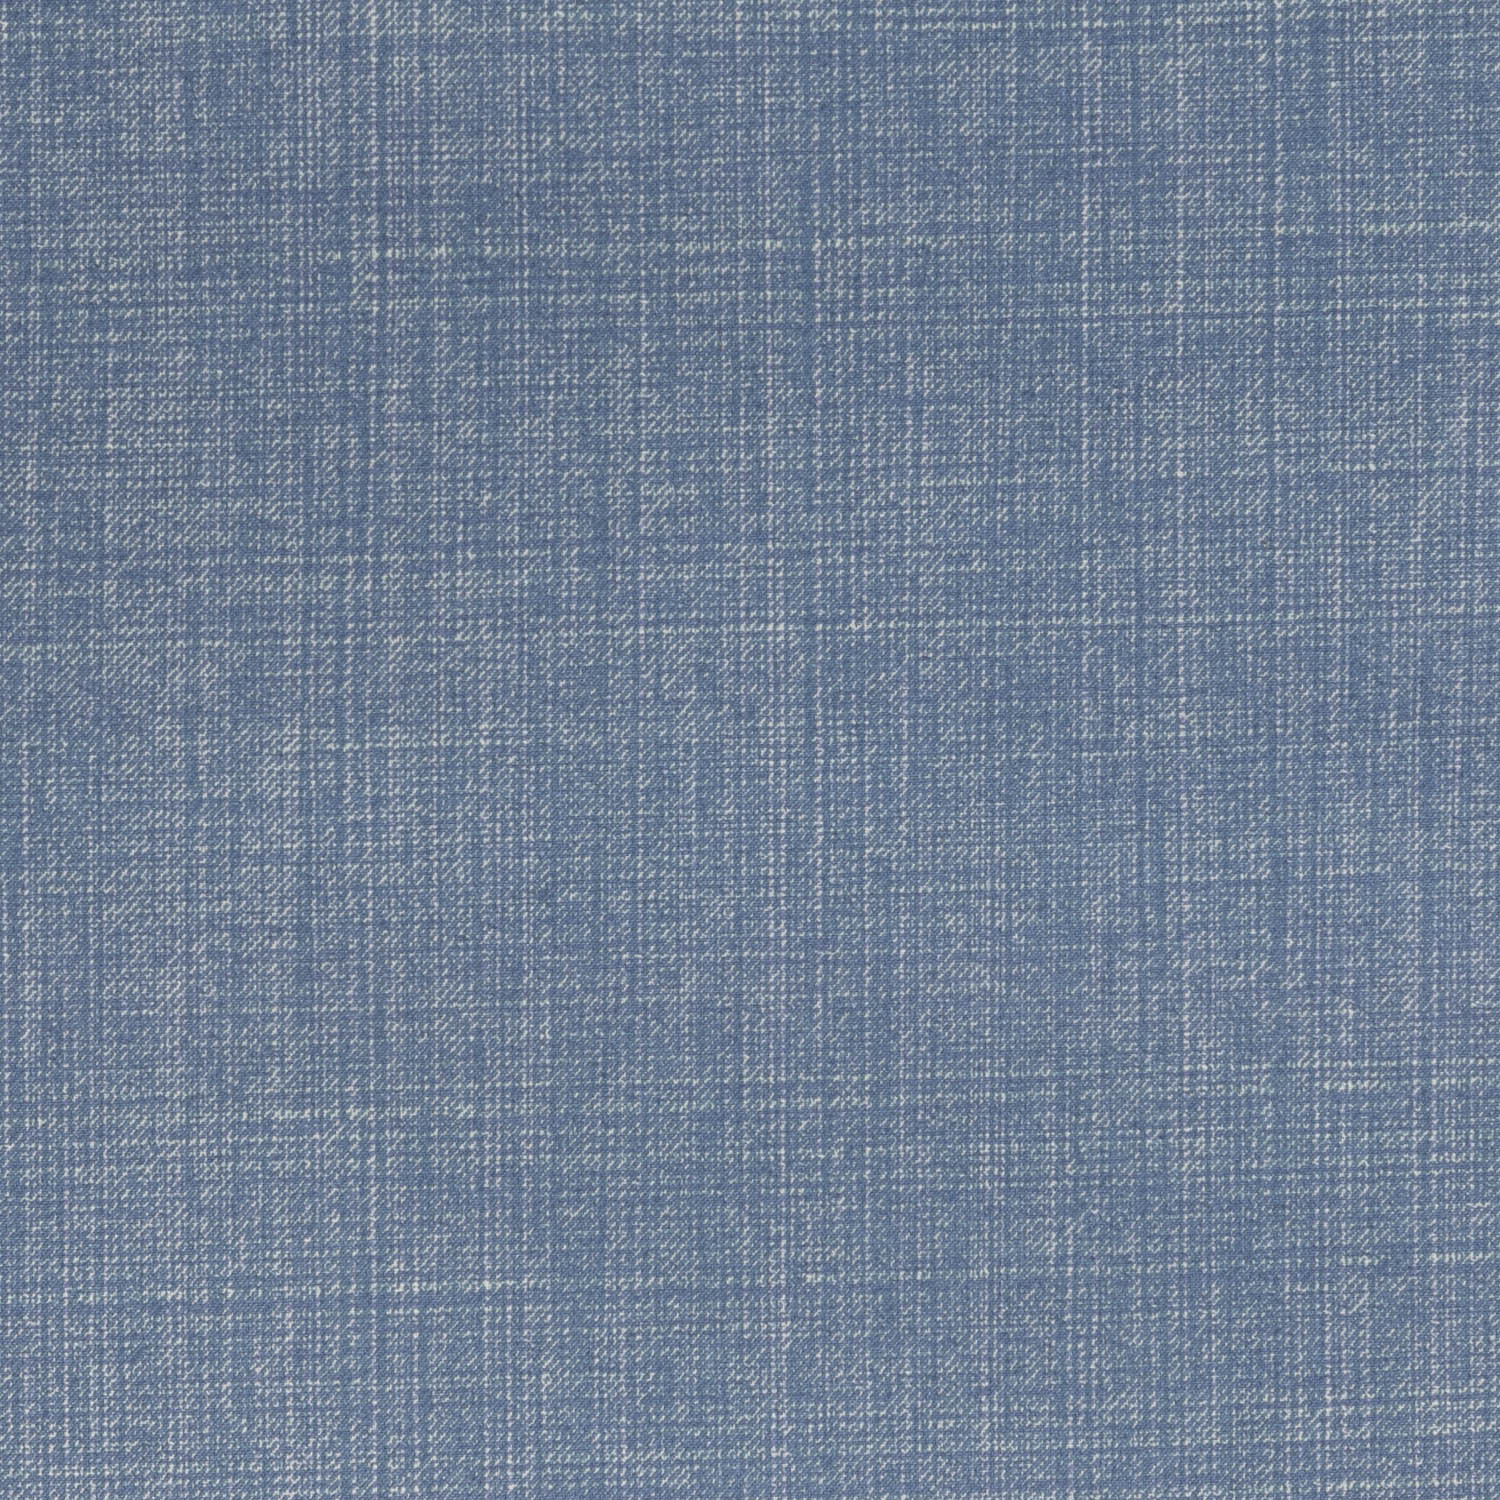 l-102-blue-fermoie-plain-cotton-1